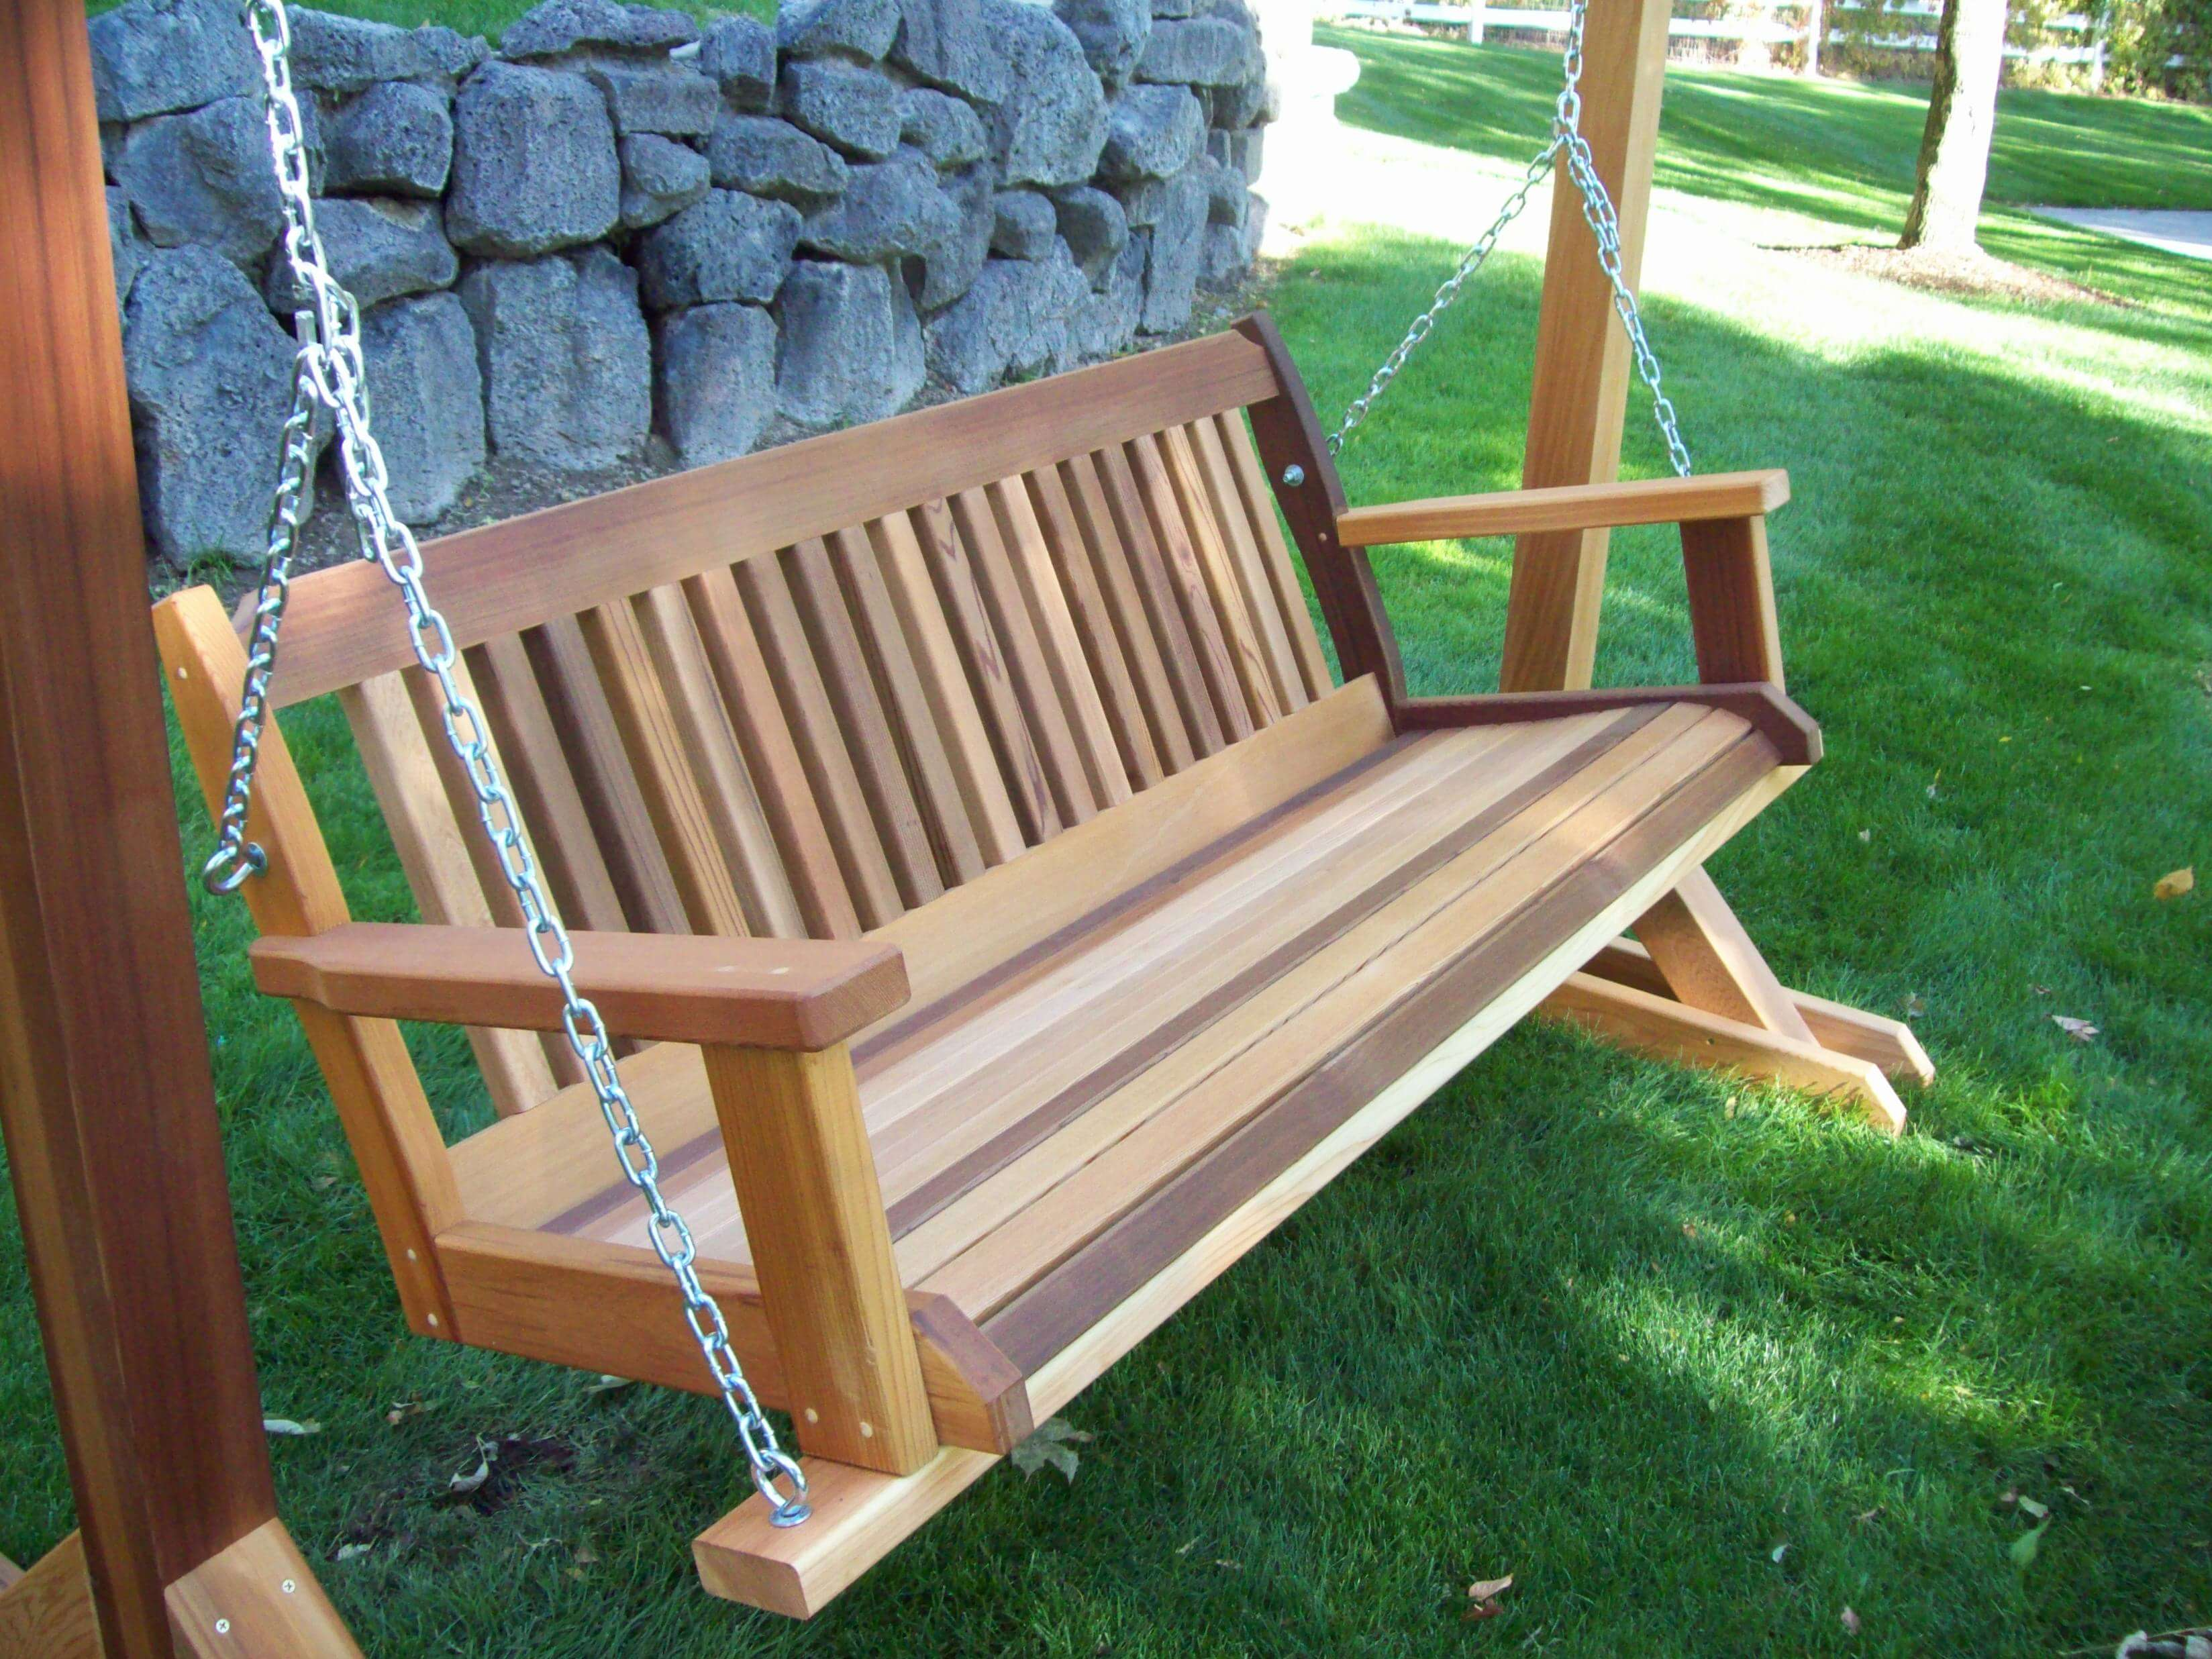 Best porch swing reviews guide the hammock expert for How to build a swing chair